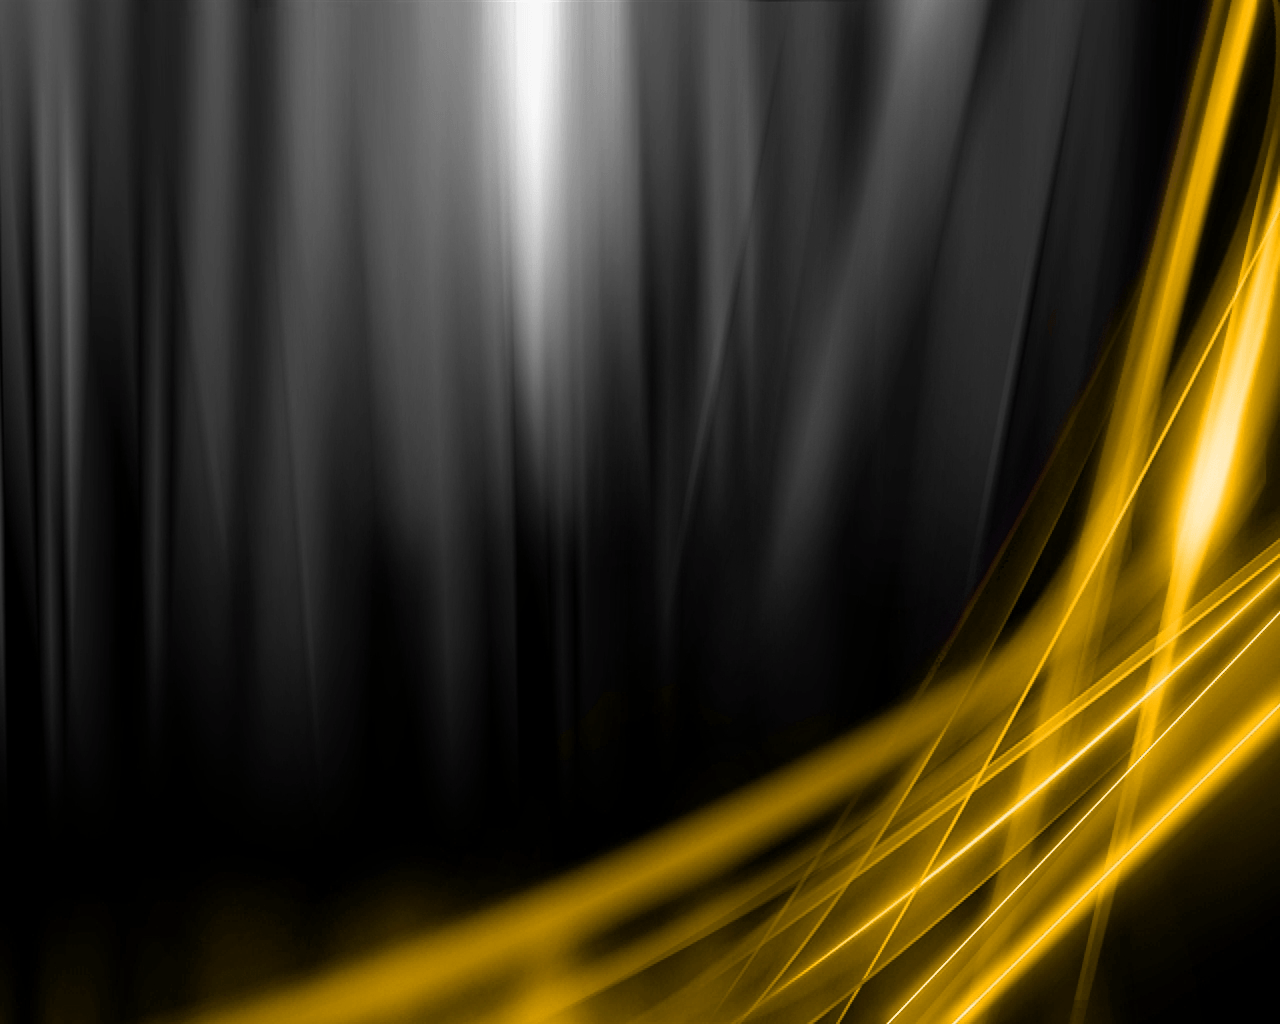 Gold And Black Backgrounds - Wallpaper Cave